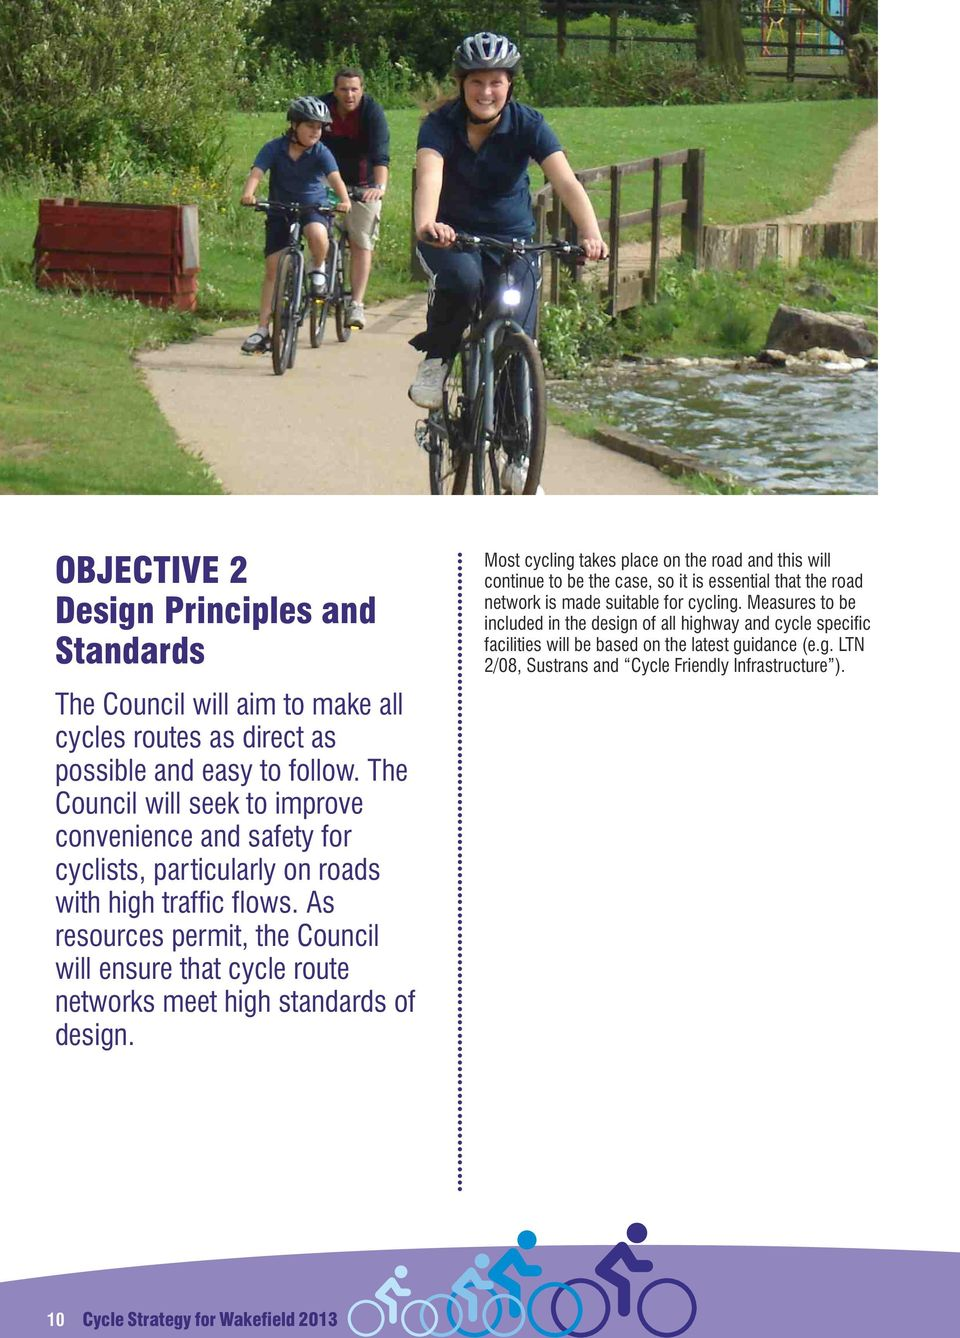 As resources permit, the Council will ensure that cycle route networks meet high standards of design.